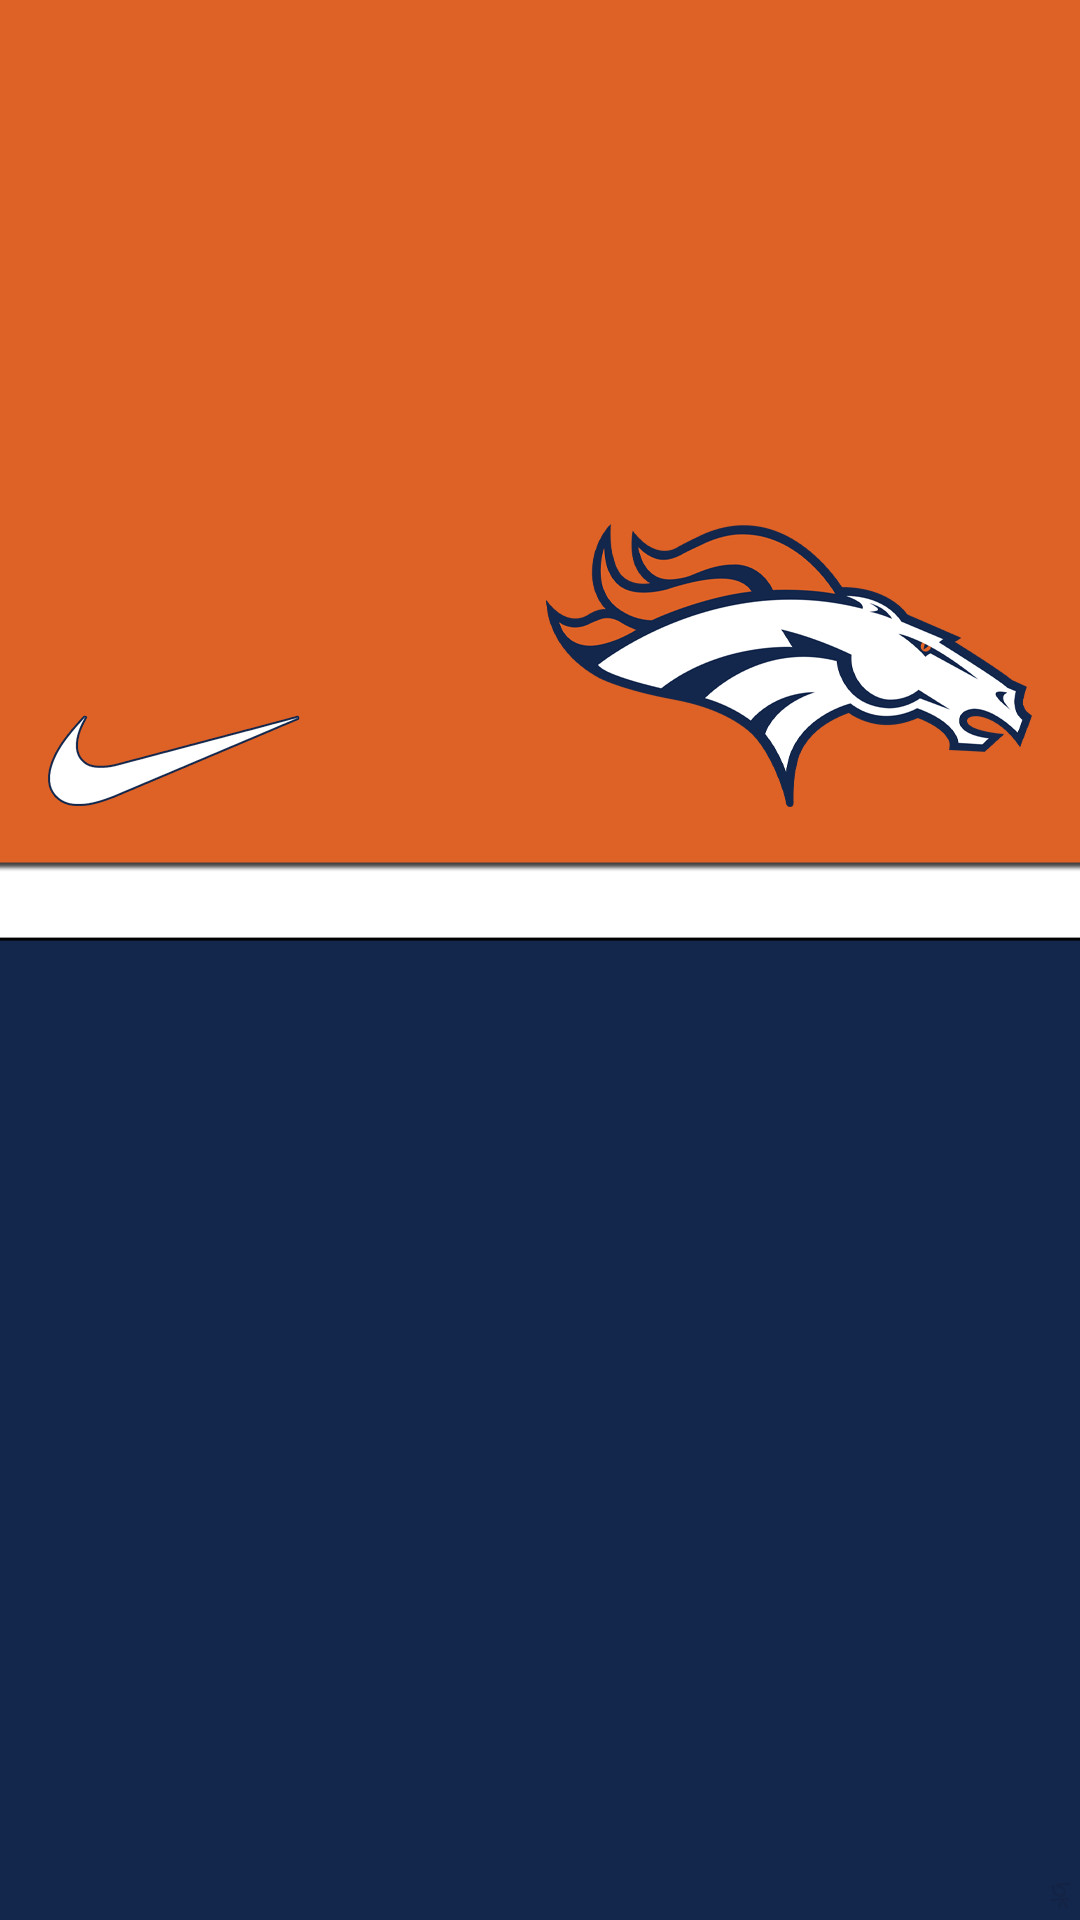 1080x1920 2015 Denver Broncos Wallpaper - WallpaperSafari | All Wallpapers |  Pinterest | Denver broncos wallpaper and Wallpaper